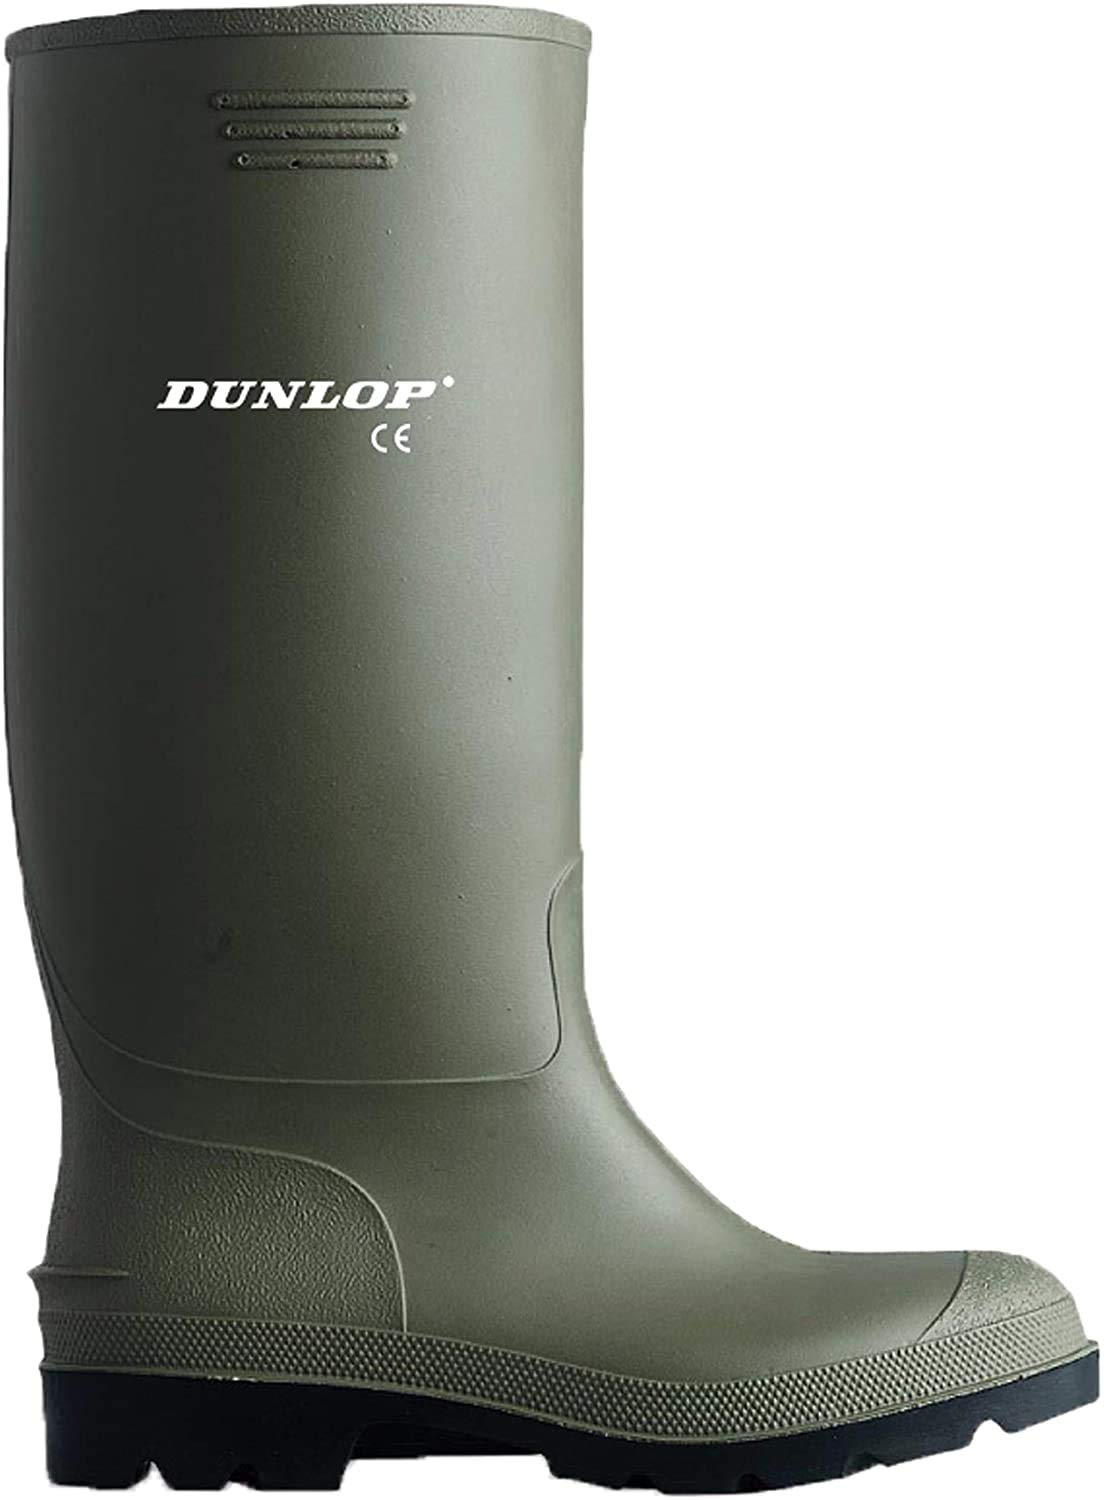 Dunlop Pricemastor famous PVC Welly Mens All items free shipping Wellington Boots US 10 Gree